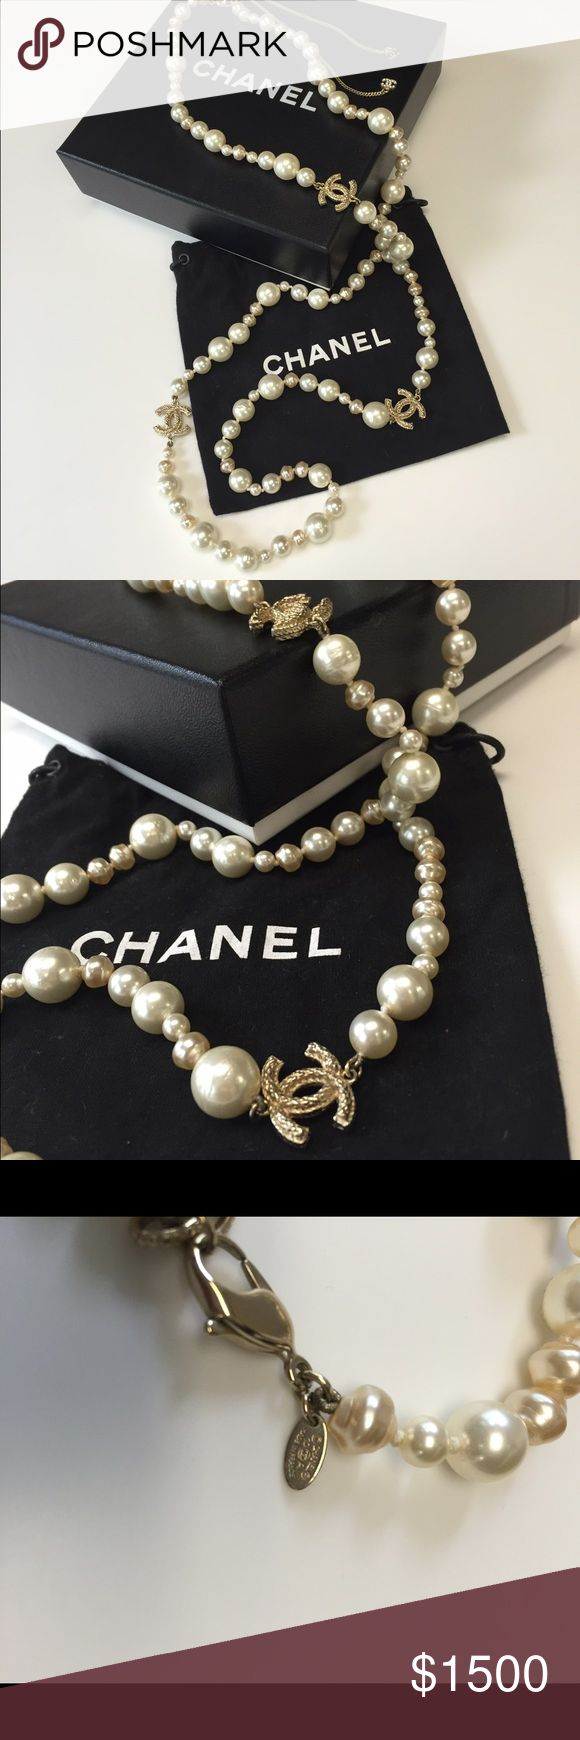 Chanel Pearl Necklace with Rope Brush Metal Beautiful Chanel Pearl Necklace. Gently worn. Necklace is 47 inches with additional length in the draping clasp. Clasp has two additional CCs. Brushed metal rope CCs. Size of CC comparable to a quarter. Original box and bag included. Necklace purchased at Chanel on Michigan Ave in Chicago. CHANEL Jewelry Necklaces